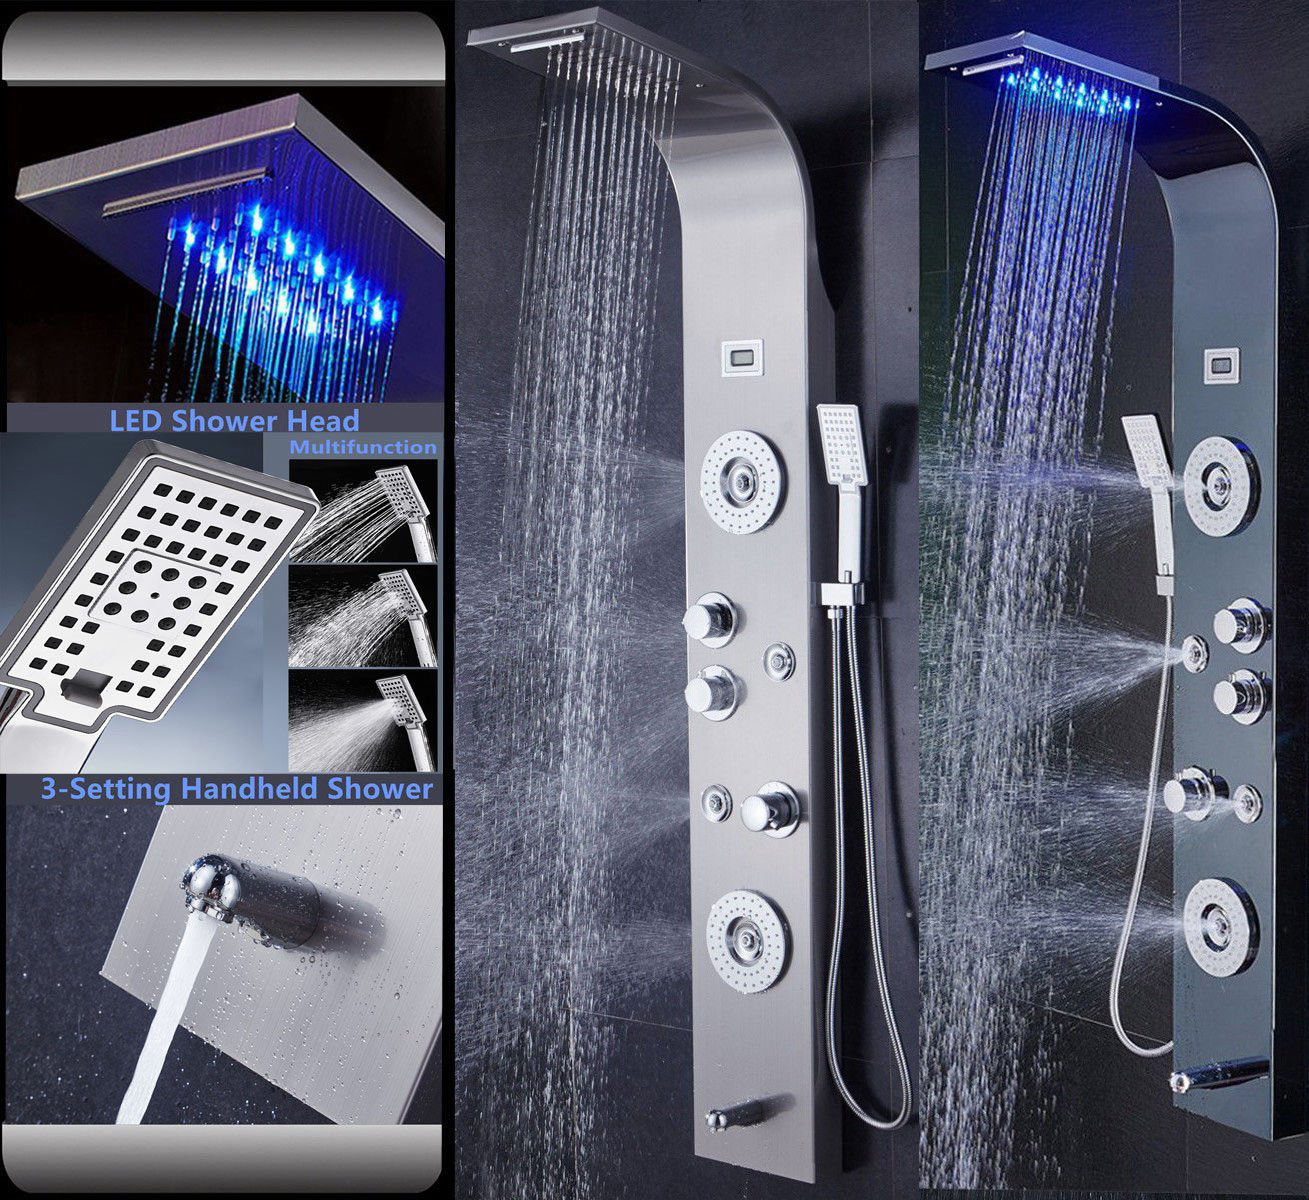 LED Luxury Stainless Steel Shower Panel Tower System,LED Rainfall Waterfall Shower Jets massage body jets hand shwoer tub spout new york jets stainless dog bowl